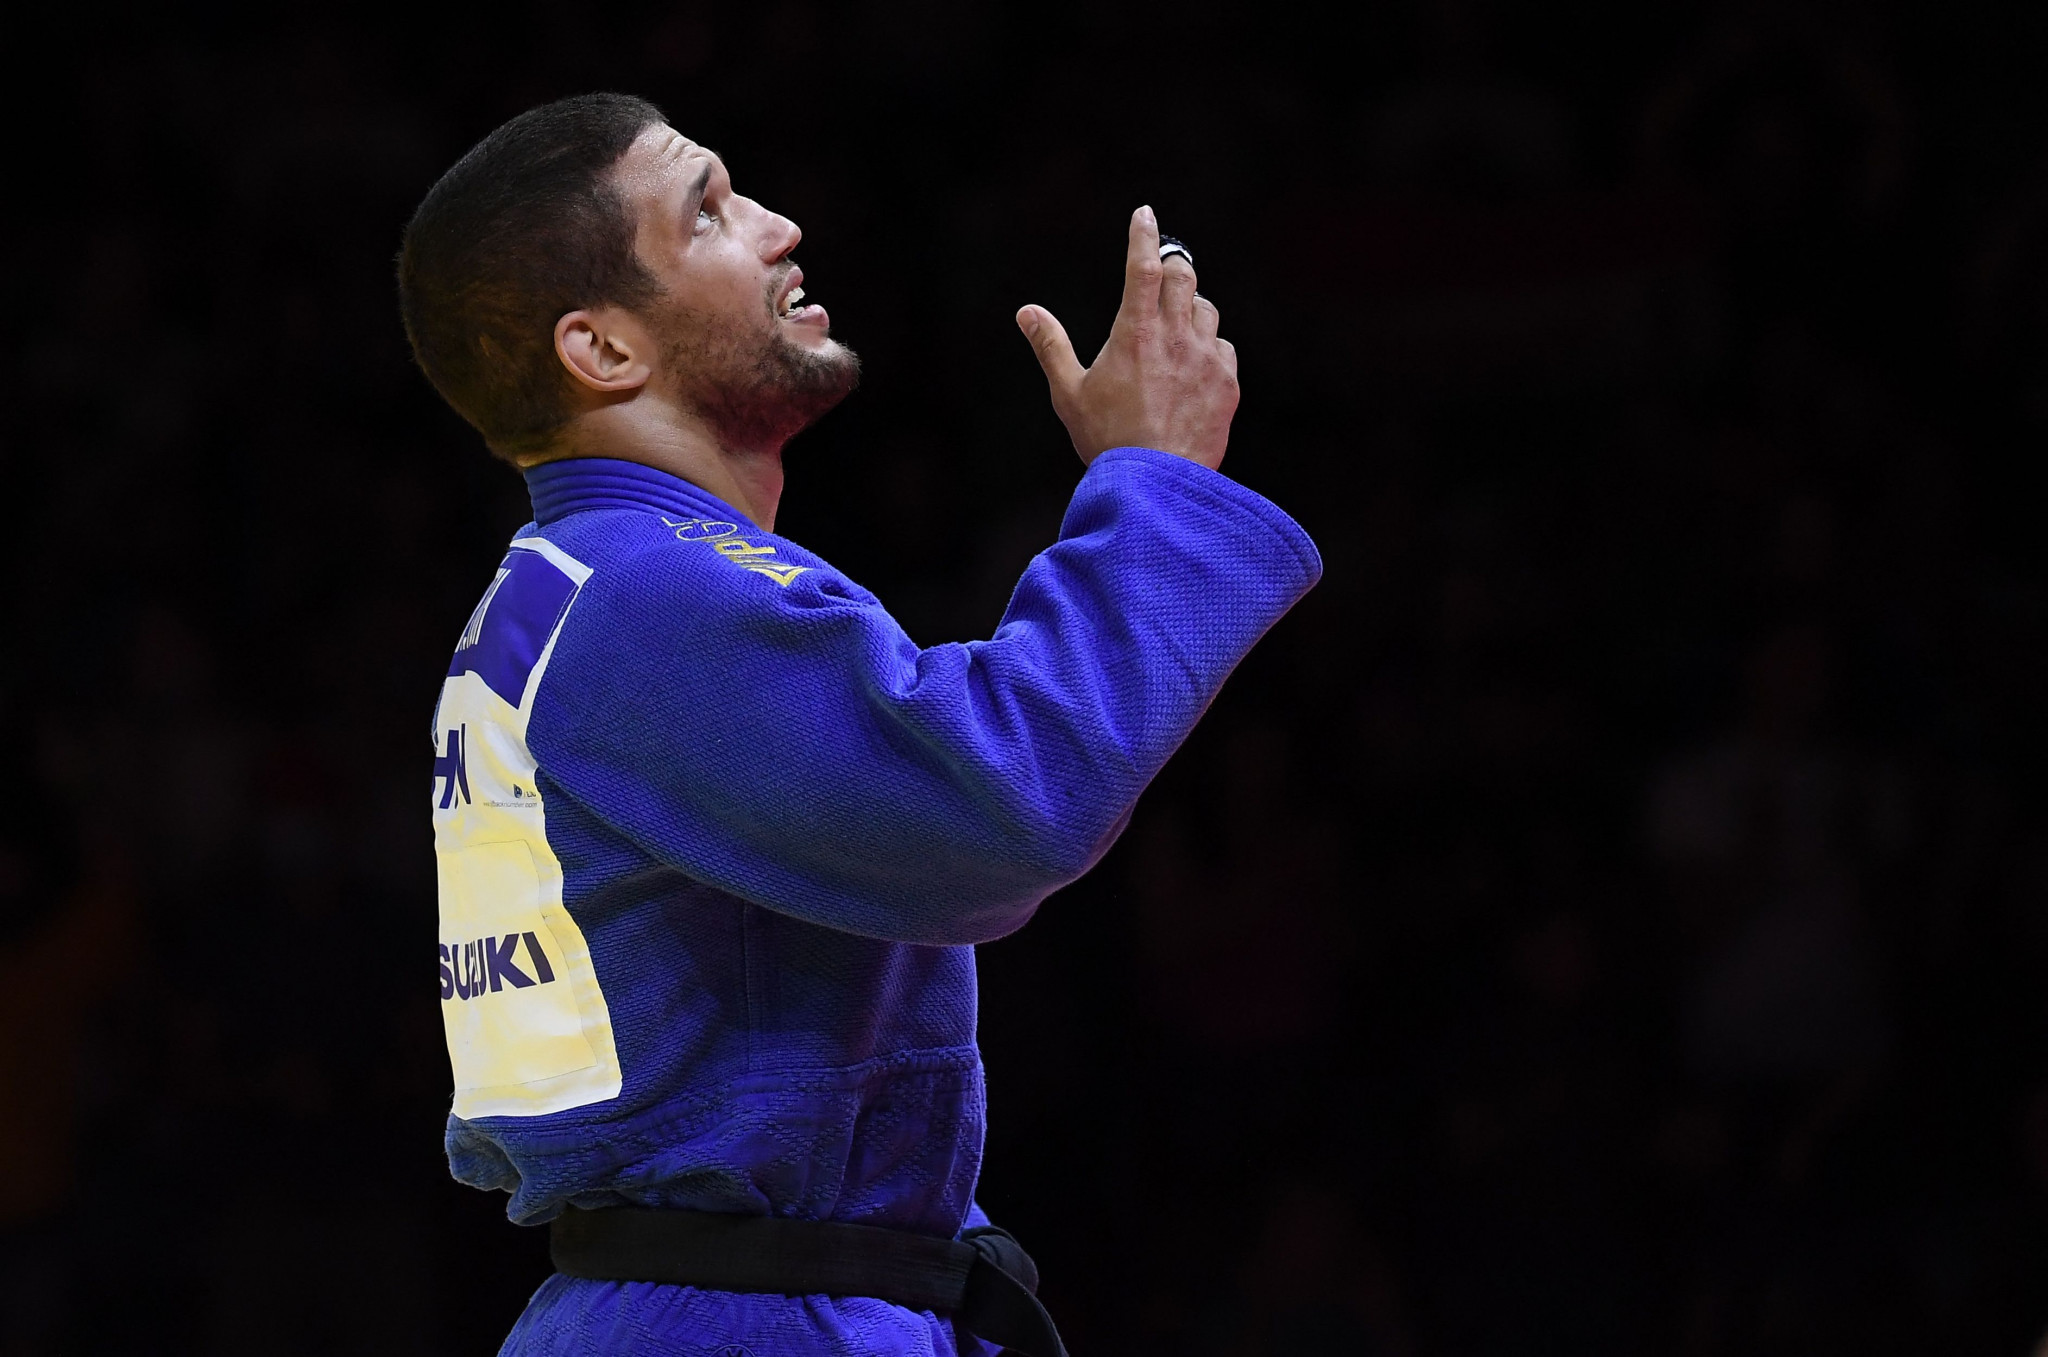 Krisztián Tóth delighted the home crowd when delivered Hungary's first medal of the World Judo Championships with a bronze ©Getty Images